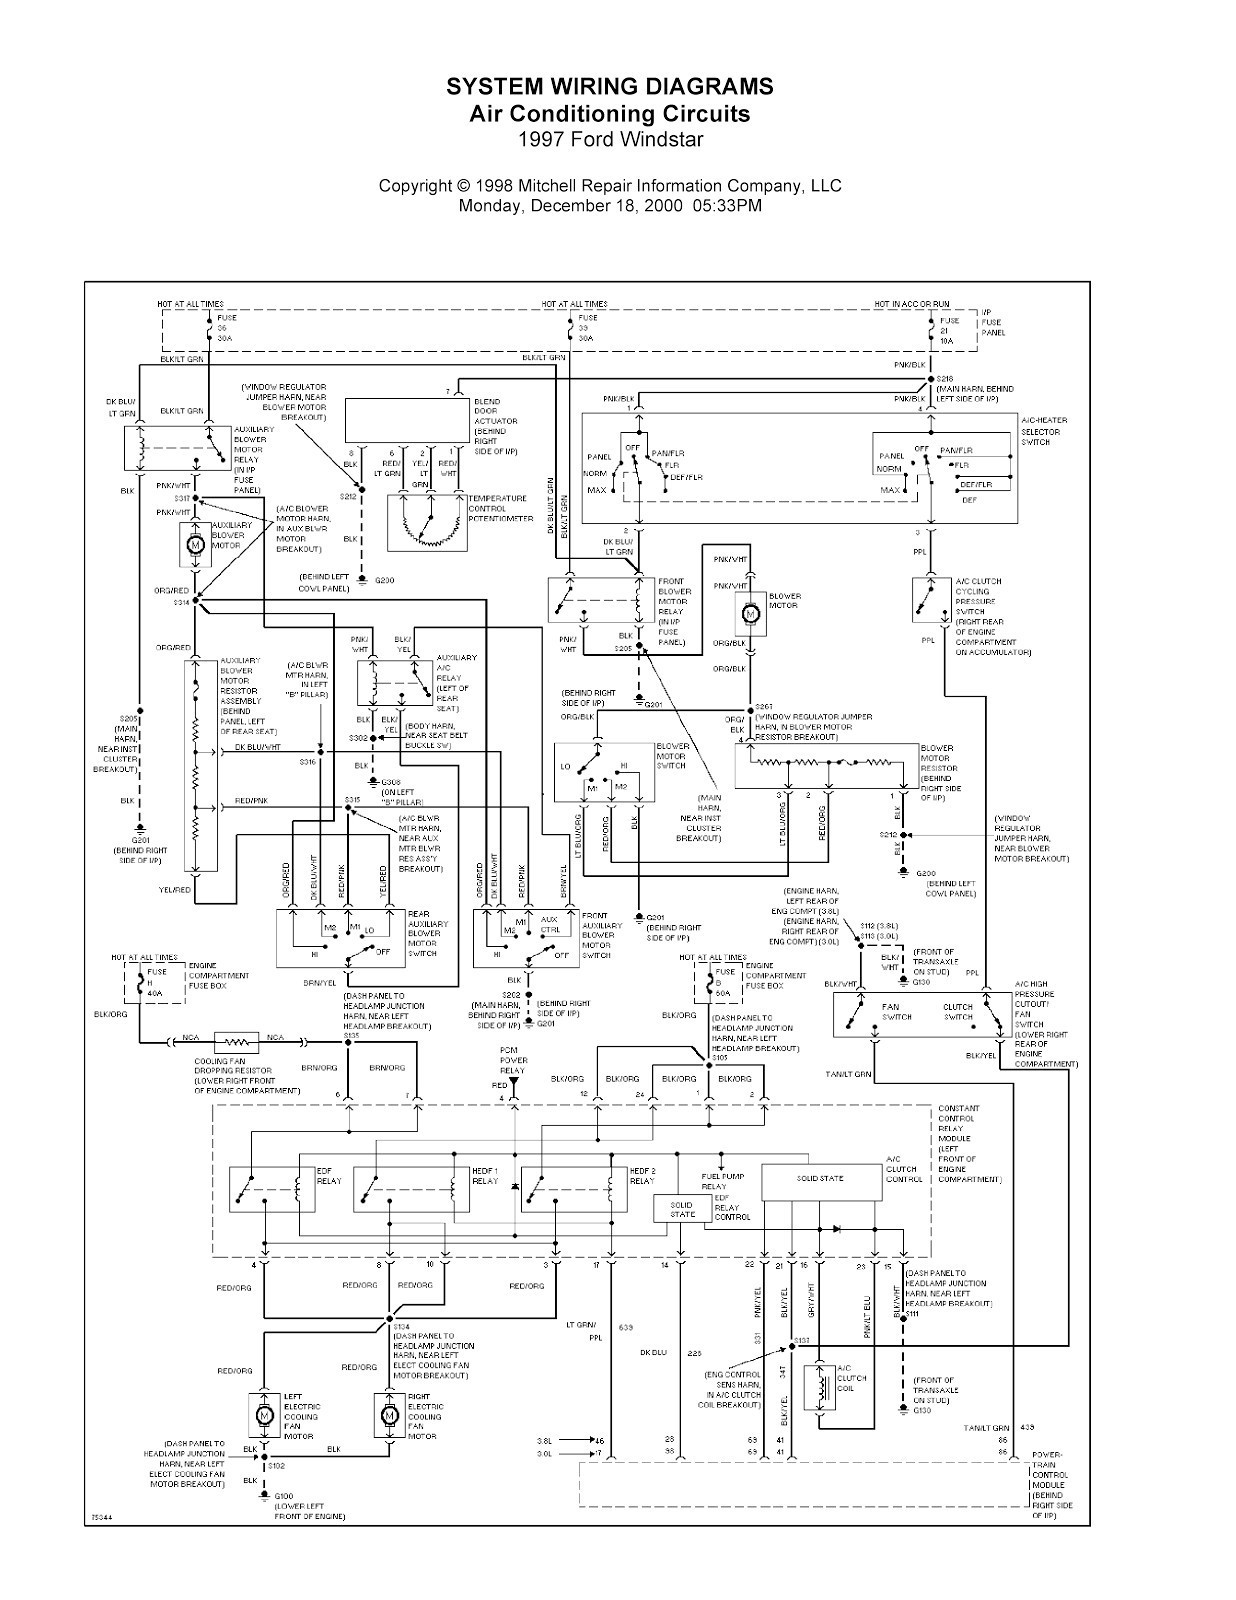 Wiring Diagram For 2003 Ford Windstar - Wiring Diagram Schematic on